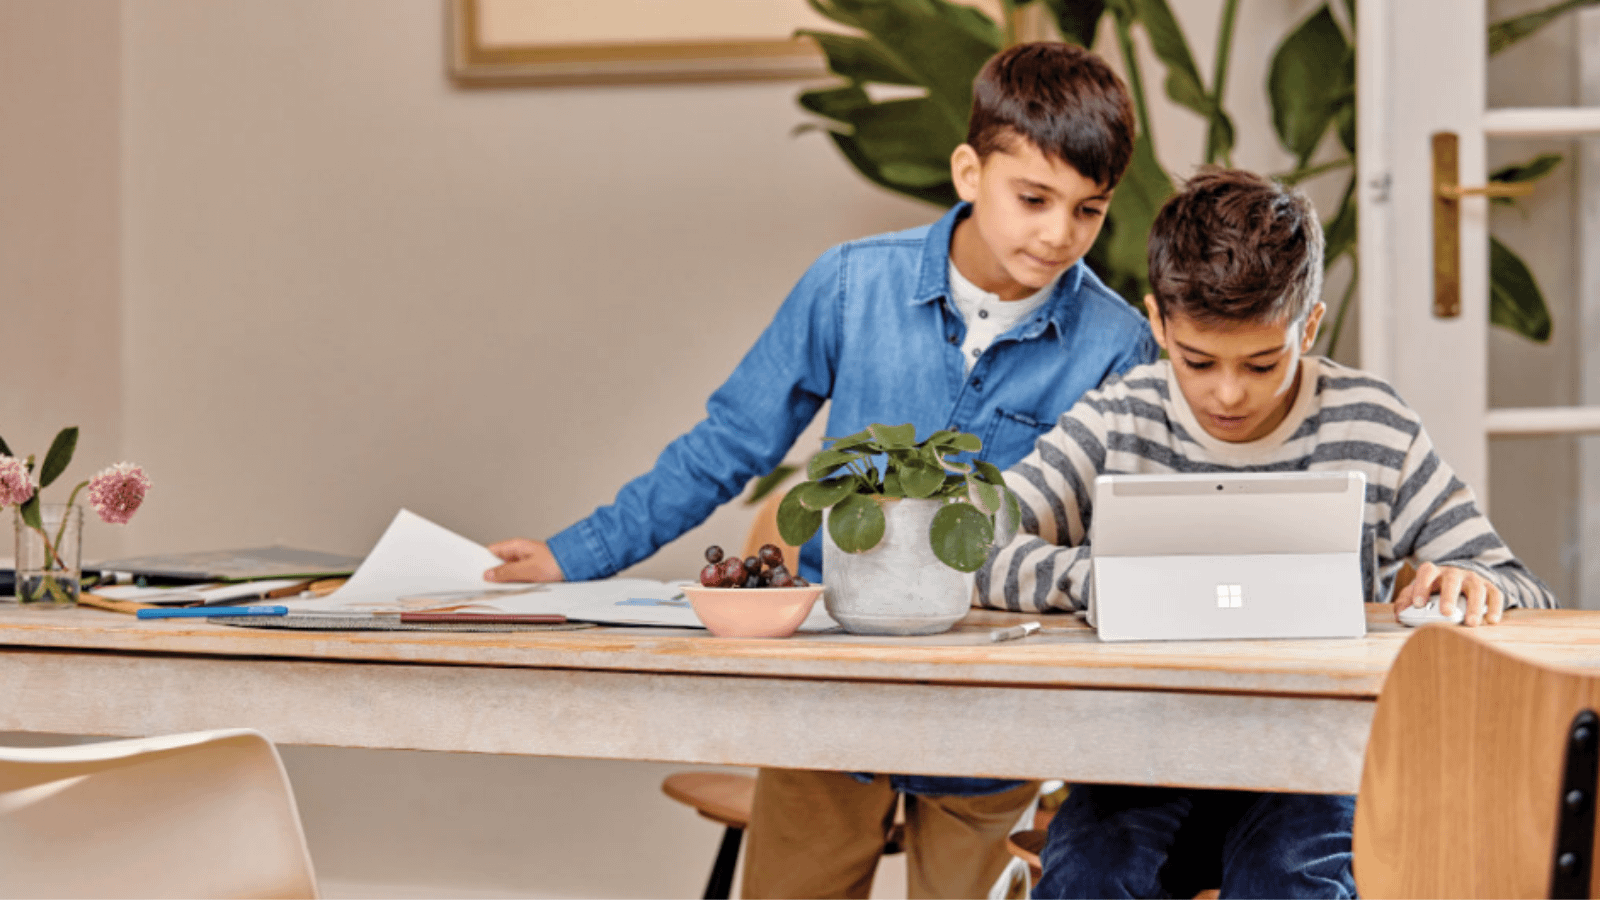 Two boys collaborating on a school project